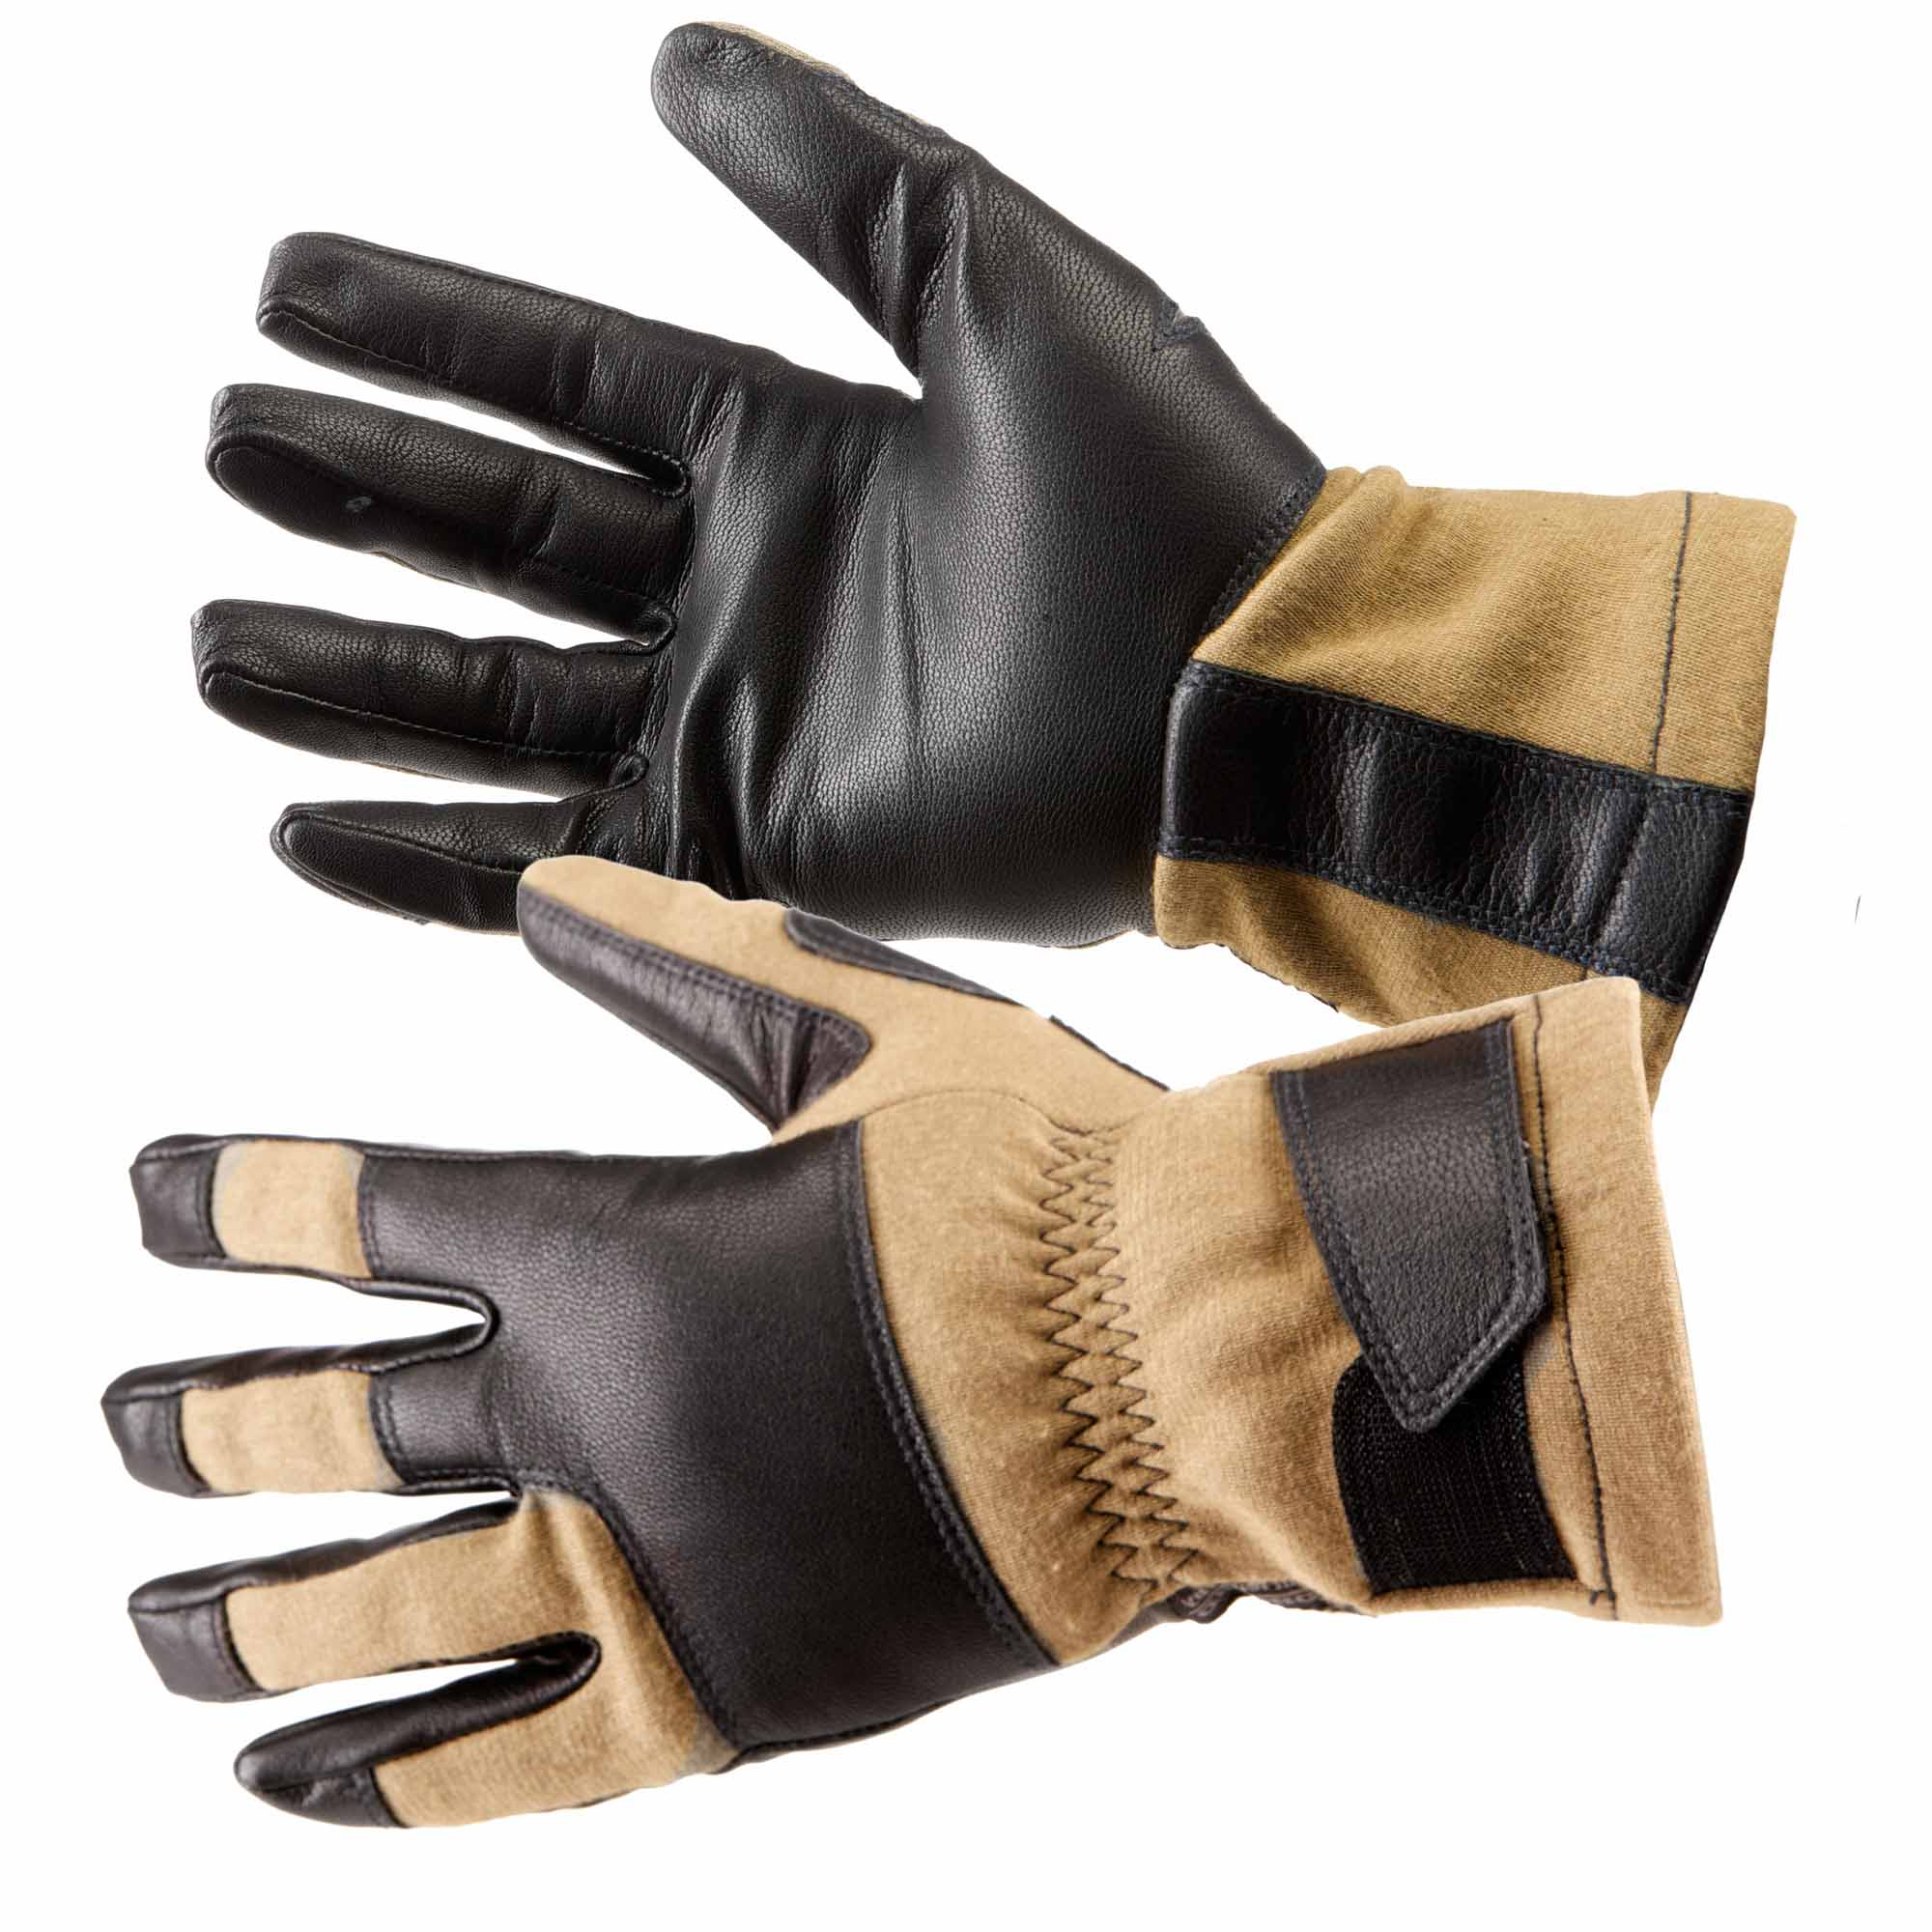 5.11 Tactical Men's Tac NFOE2 Flight Glove (Khaki/Tan)